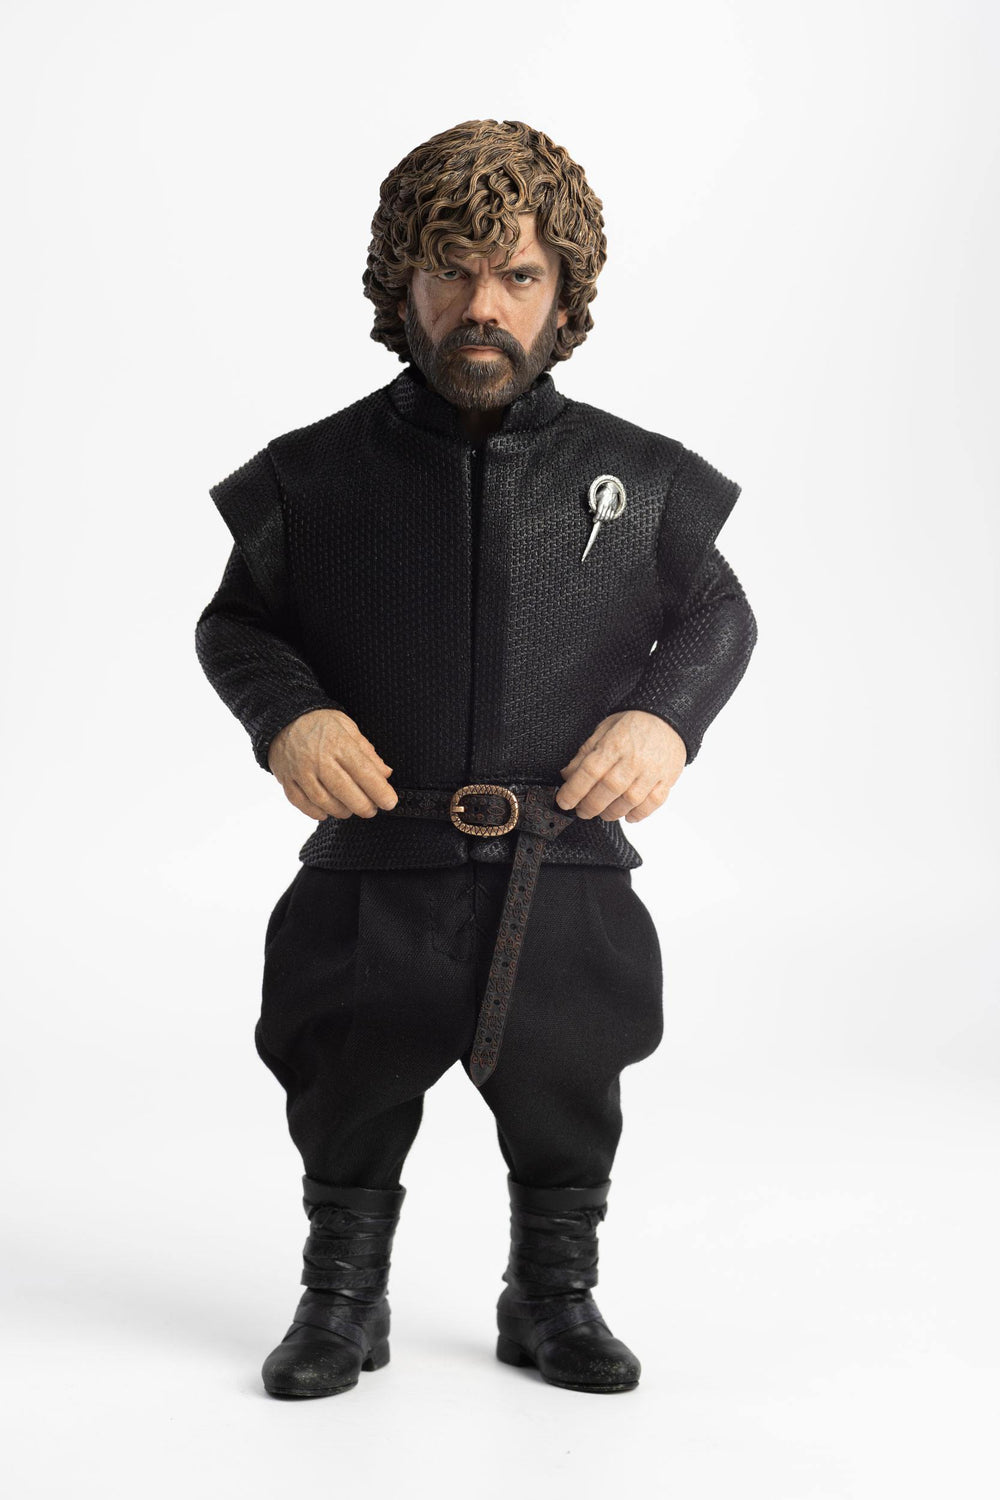 Threezero Game Of Thrones Tyrion Lannister Season 7 1/6 Action Figure